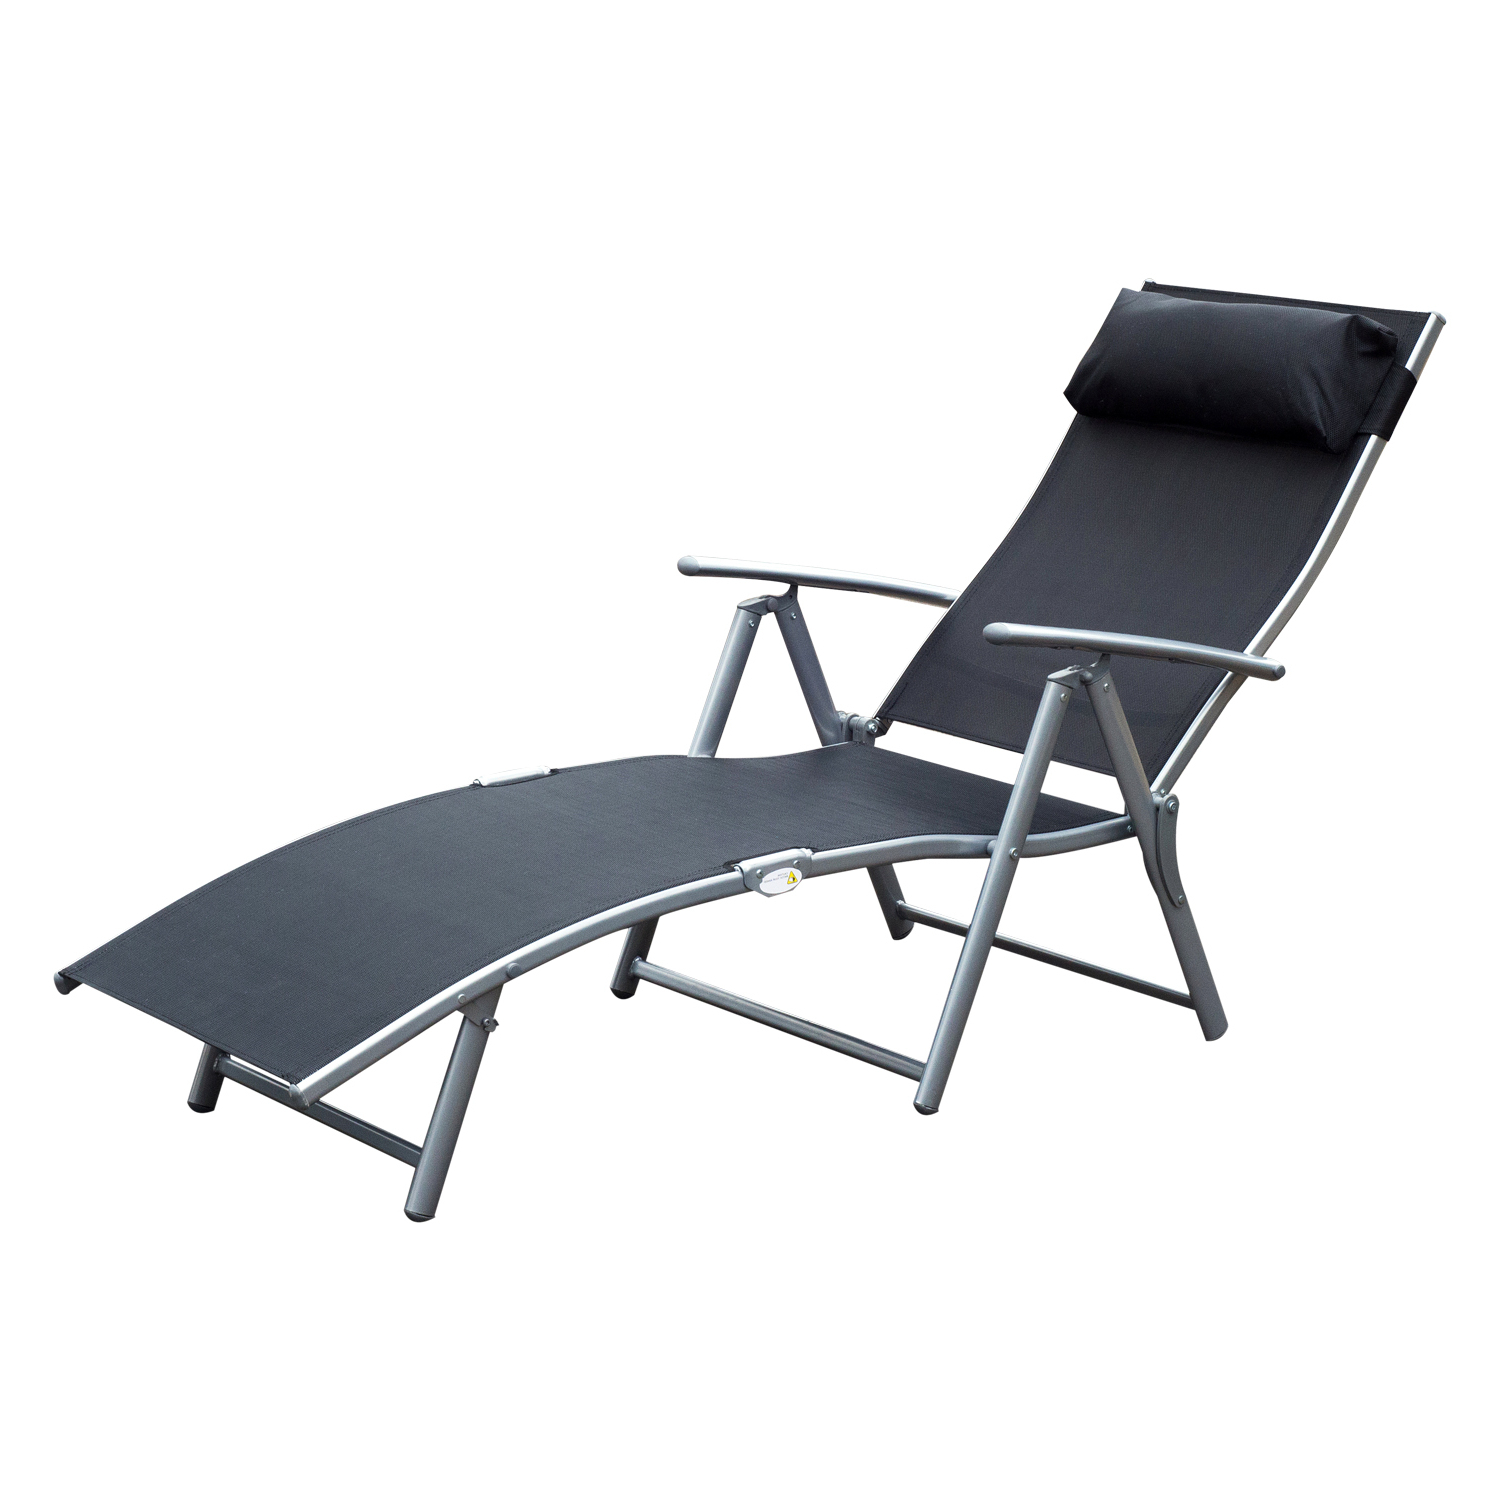 Most Recently Released Outsunny Sling Fabric Patio Reclining Chaise Lounge Chair Folding 5 Position Adjustable Outdoor Deck With Cushion – Black – Walmart Regarding Black Sling Fabric Adjustable Chaise Lounges (View 9 of 25)